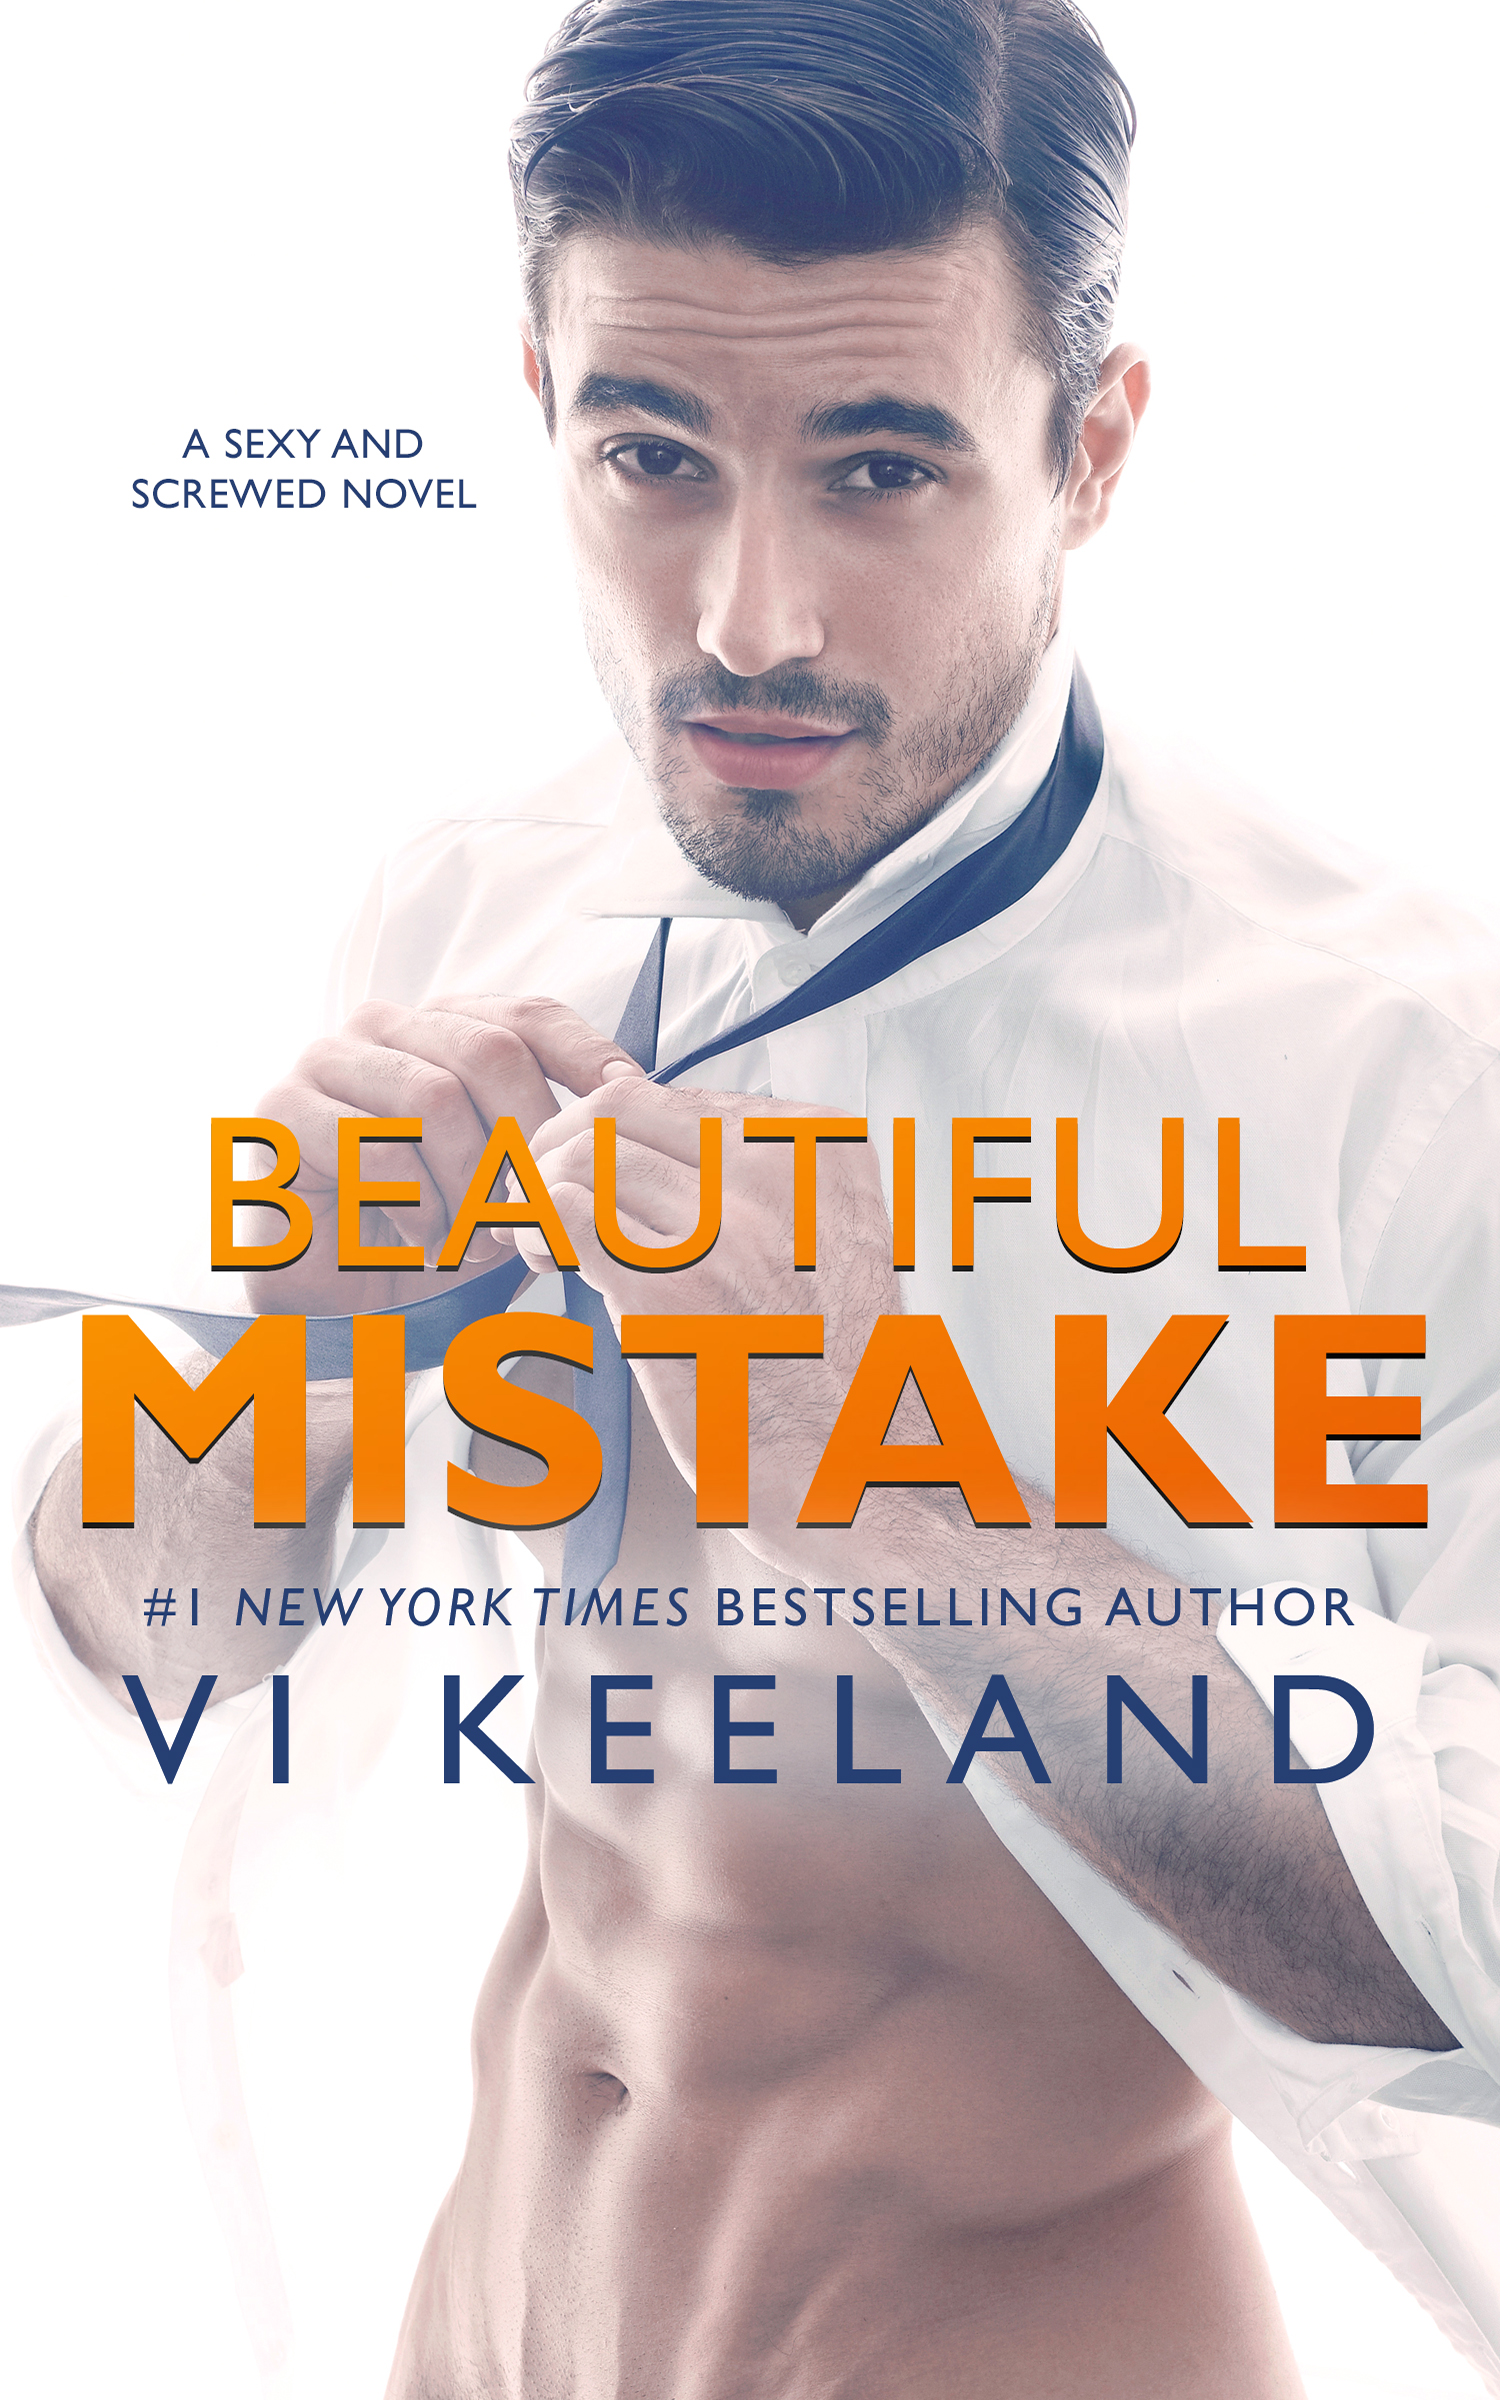 BEAUTIFUL MISTAKE      By Vi Keeland      RELEASING JULY 17TH    The first time I met Caine West was in a bar.  He noticed me looking his way and mistakenly read my scowling as checking him out.  When he attempted to talk to me, I set him straight—telling him what I thought of his lying, cheating, egomaniacal ass.  You see, the gorgeous jerk had wined and dined my best friend--smooth talking her into his bed, all along failing to mention that he was married.  He deserved every bit of my tongue-lashing and more for what he'd done.  Especially when that lazy smile graced his perfect face in response to my rant.  Only it turned out, the man I'd just told off wasn't the right guy.   Oops. My mistake.    Embarrassed, I slunk out without an apology.  I was never going to see the handsome stranger again anyway, right?  That's what I thought…until I walked into class the next morning.  Well, hello  Professor West , I'm your new teaching assistant.  I'll be working under you…figuratively speaking.  Although the literal interpretation might not be such a bad thing—working <em>under</em> Professor West.   This was going to be interesting…